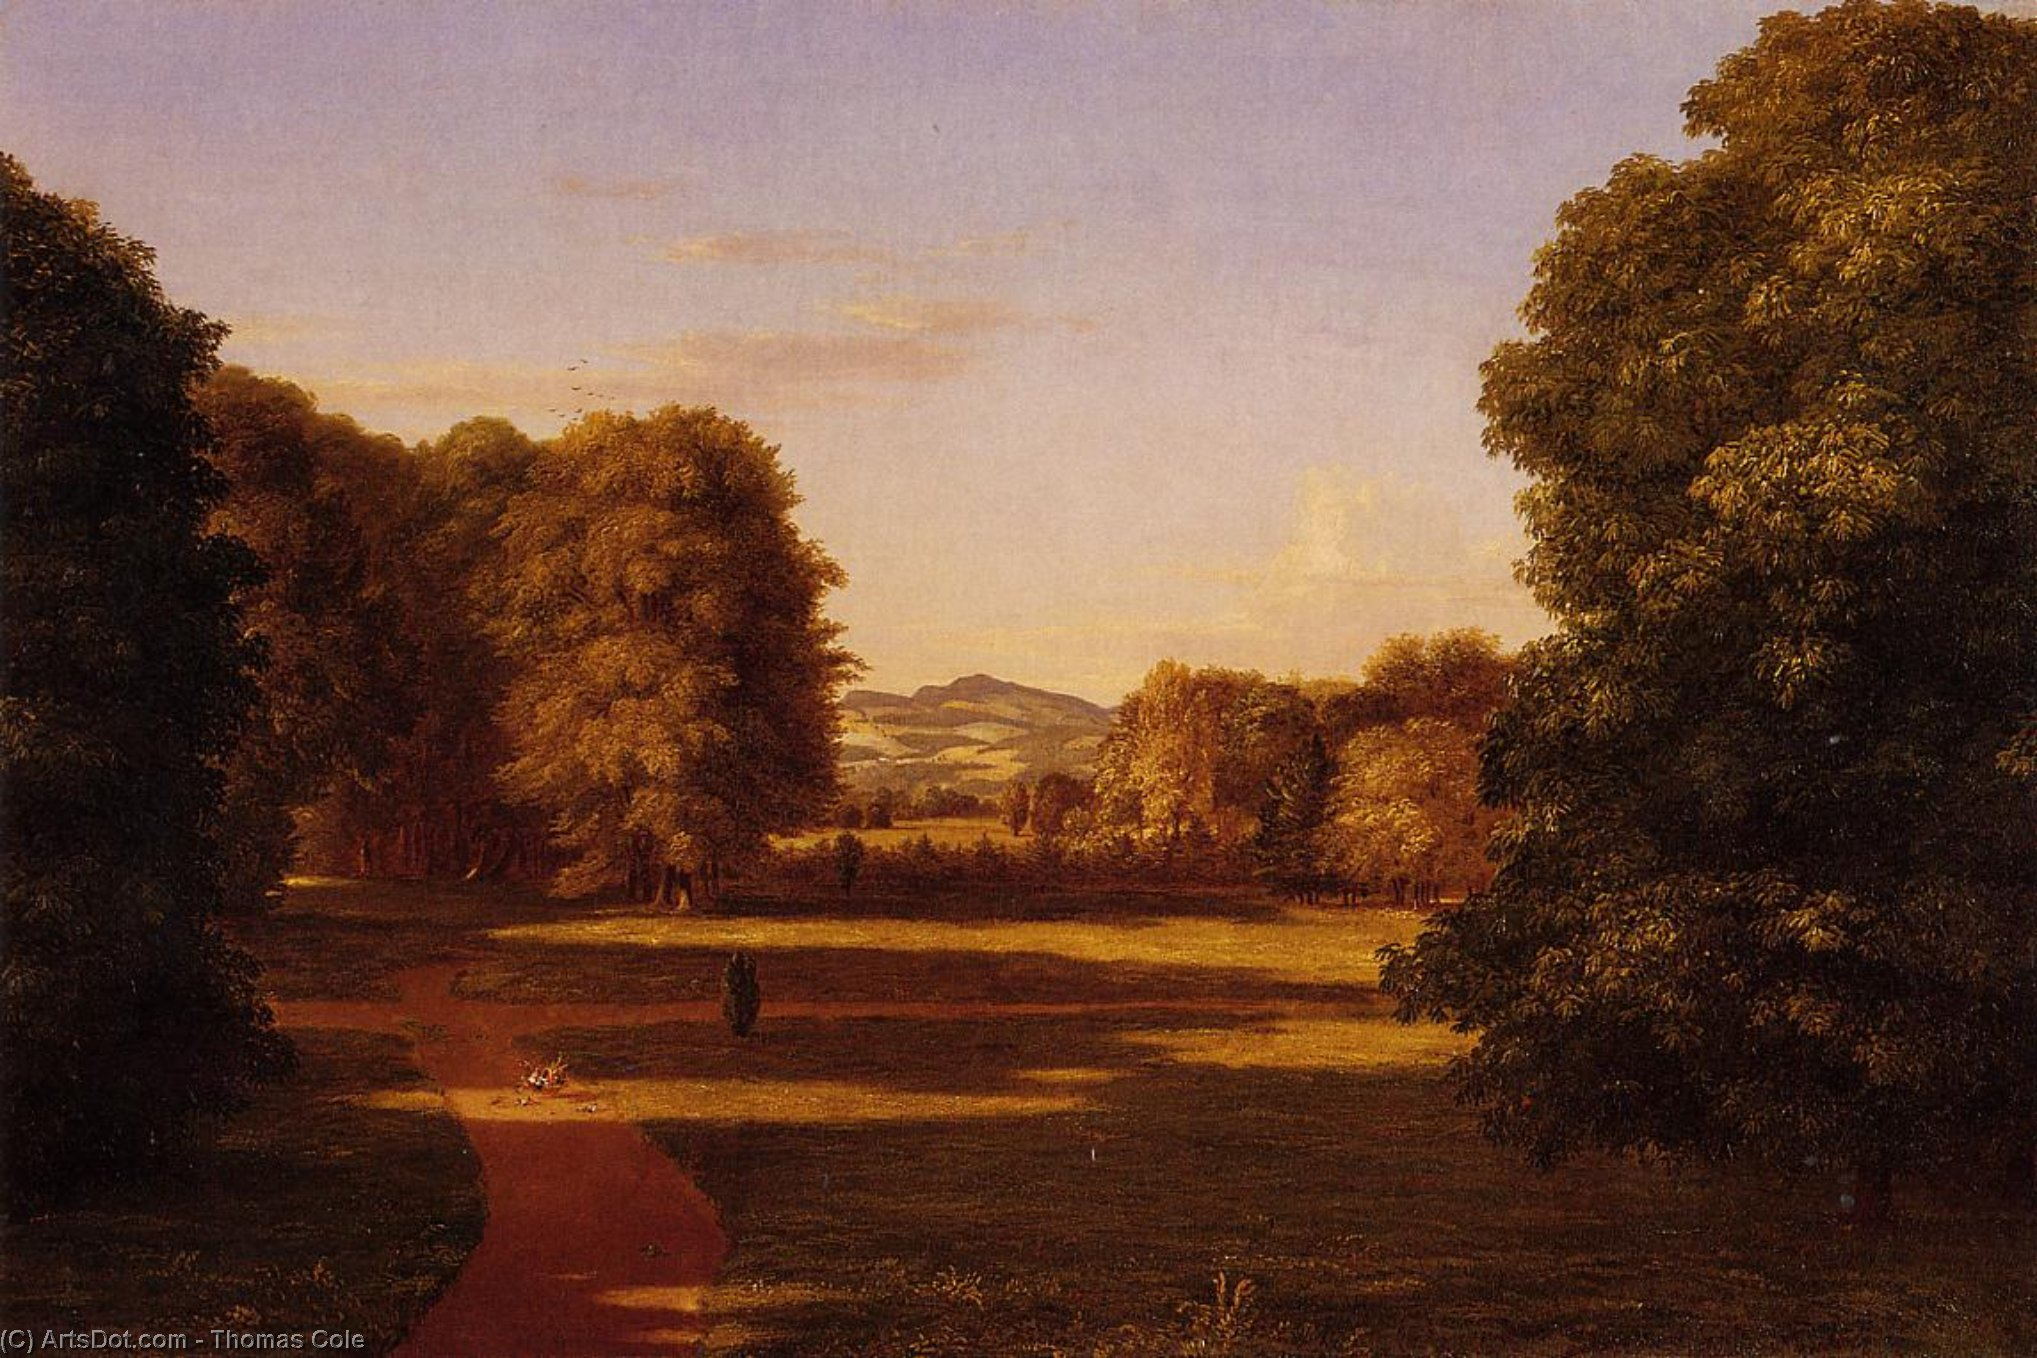 Los Jardines de la Van Rensselaer Manor House, óleo sobre lienzo de Thomas Cole (1801-1848, United Kingdom)